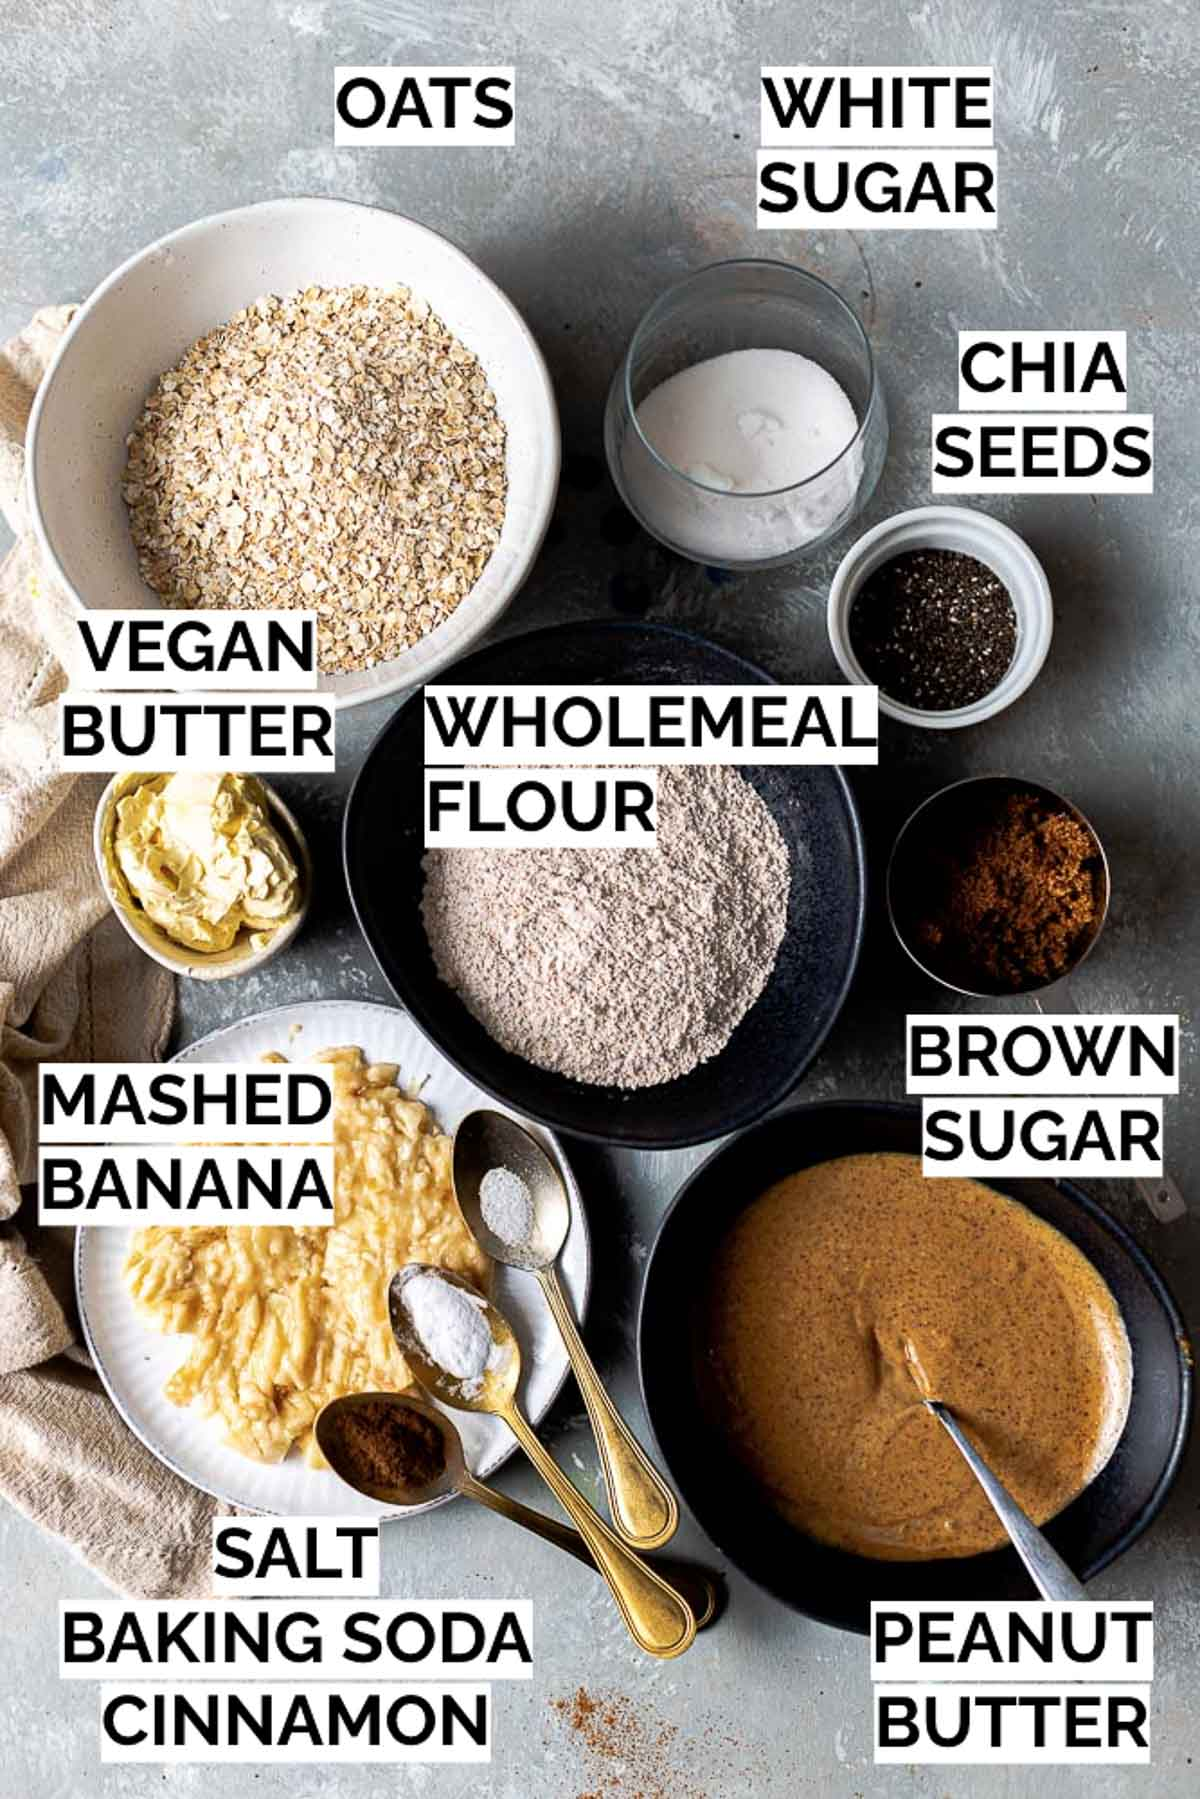 All ingredients needed to make oatmeal cookies laid out in bowls.